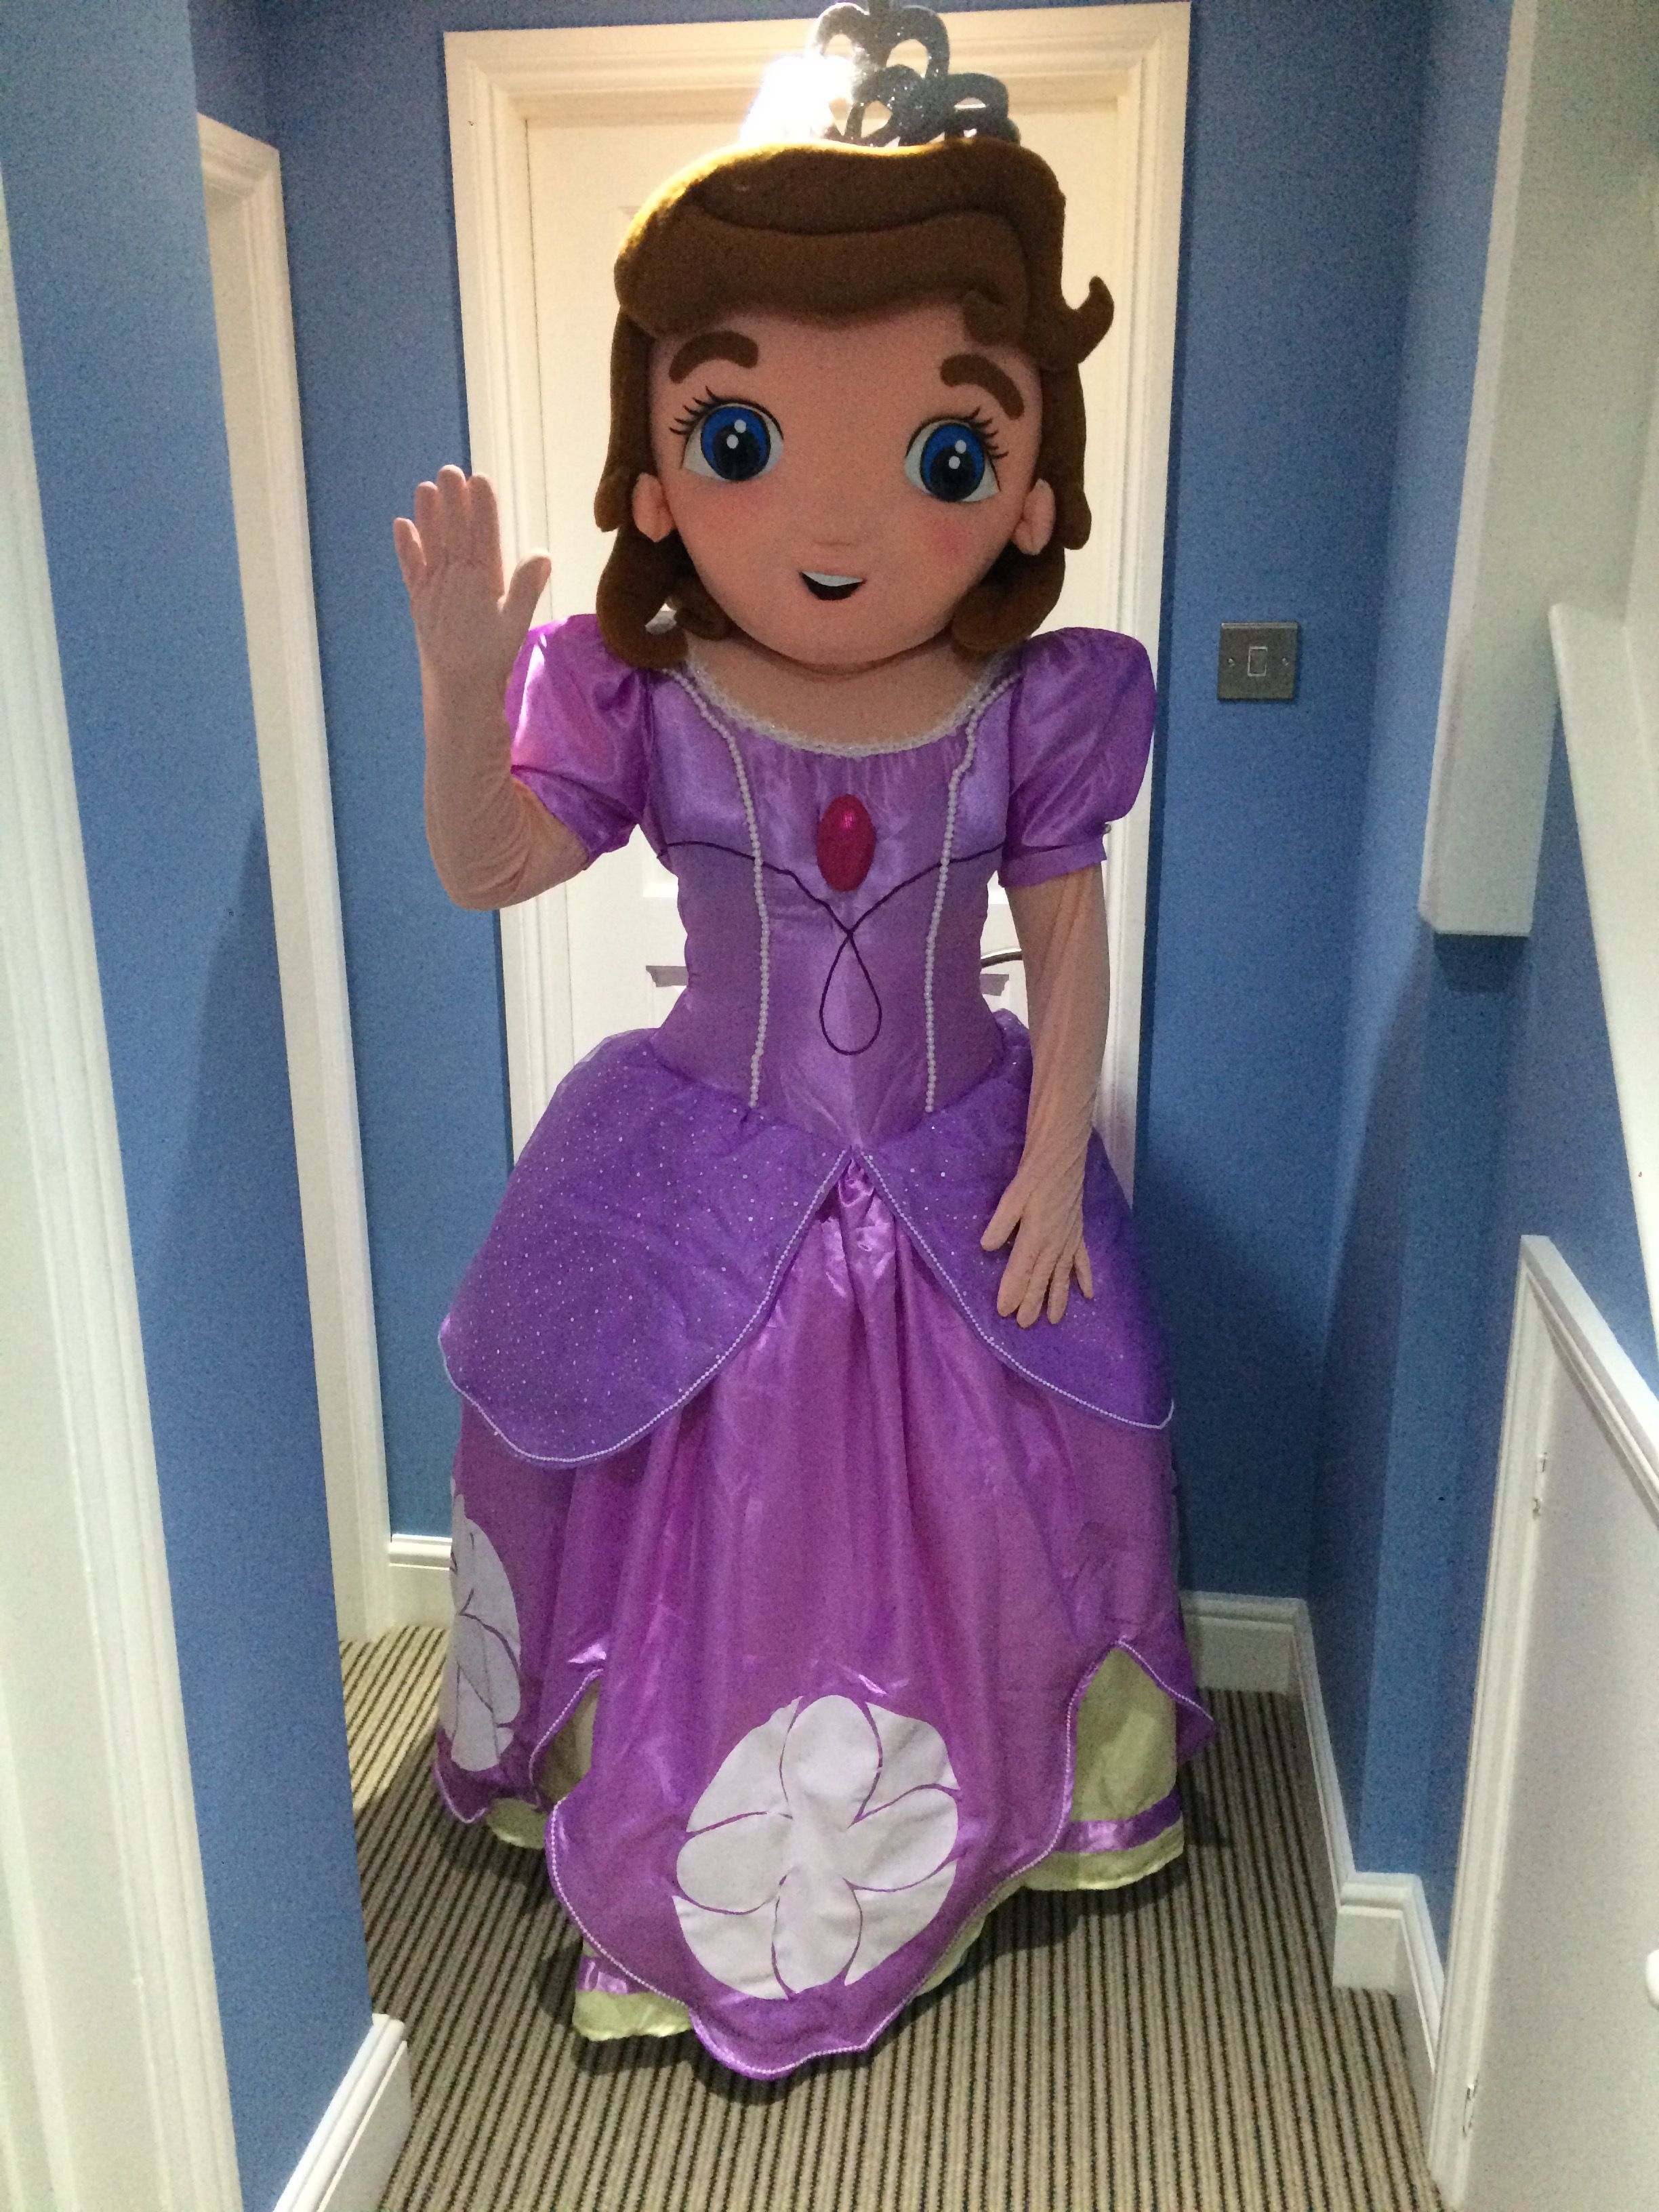 Sofia The First Character Mascot Look A Like Available To